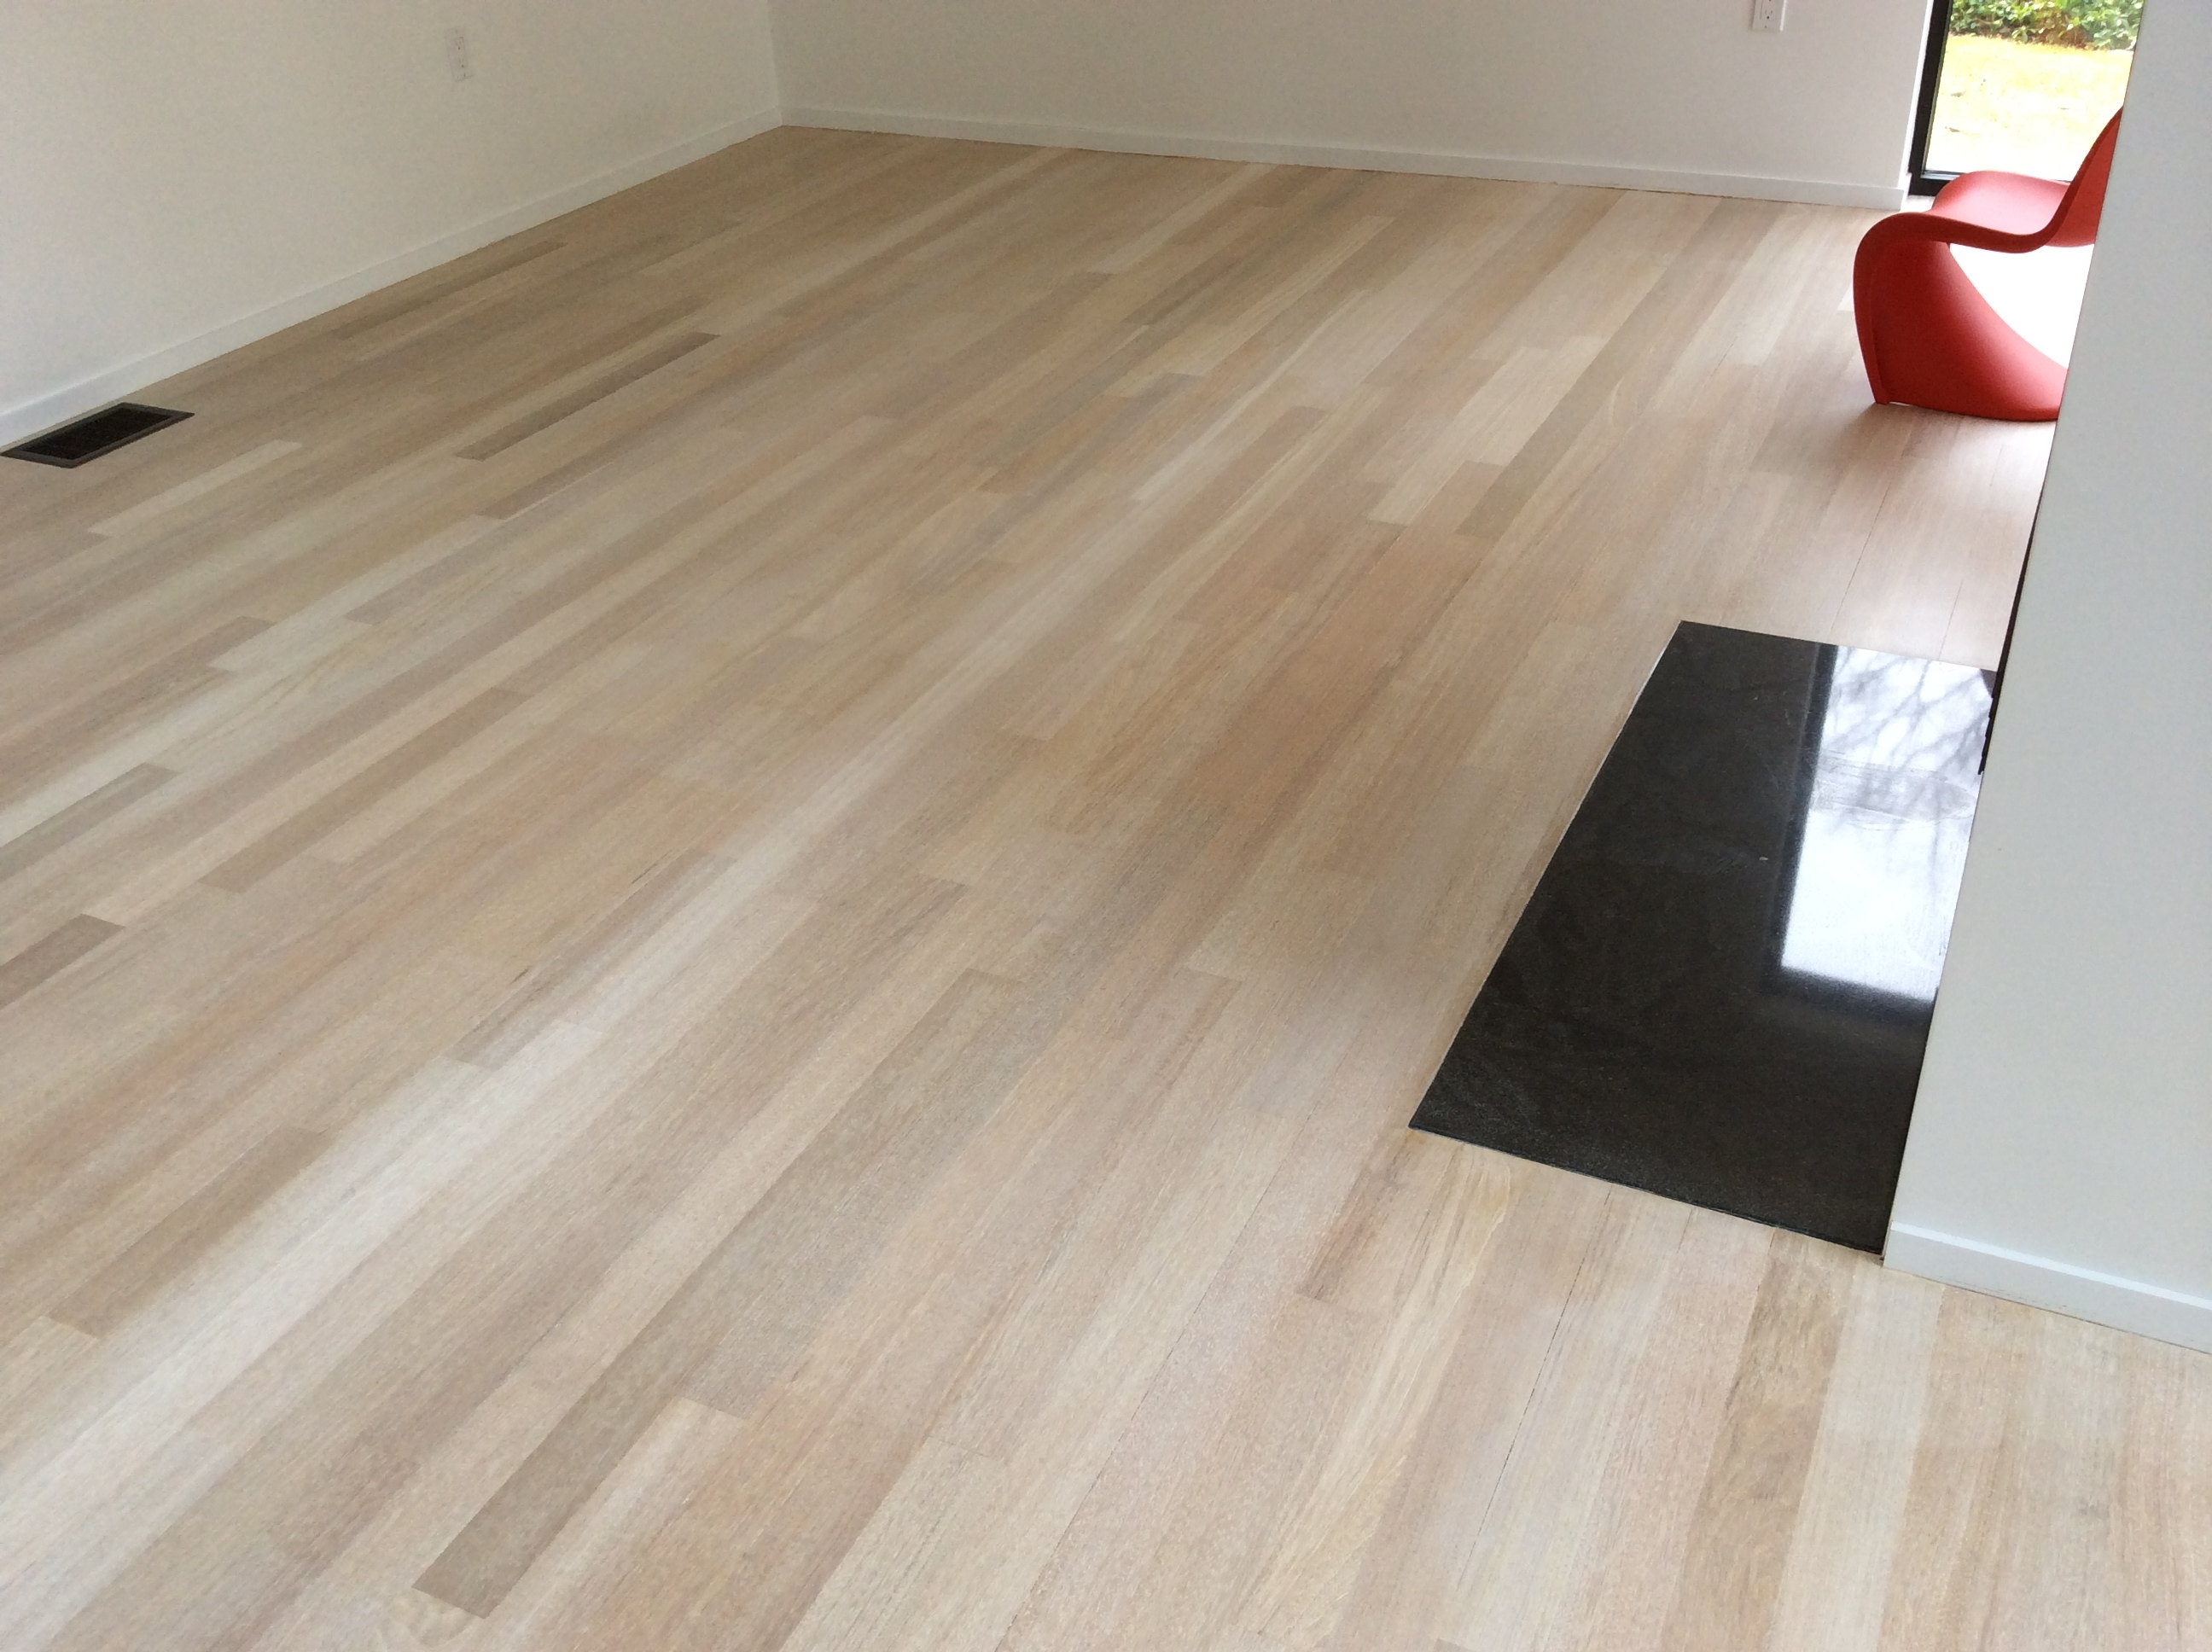 Pictures Of Pickled Wood Floors